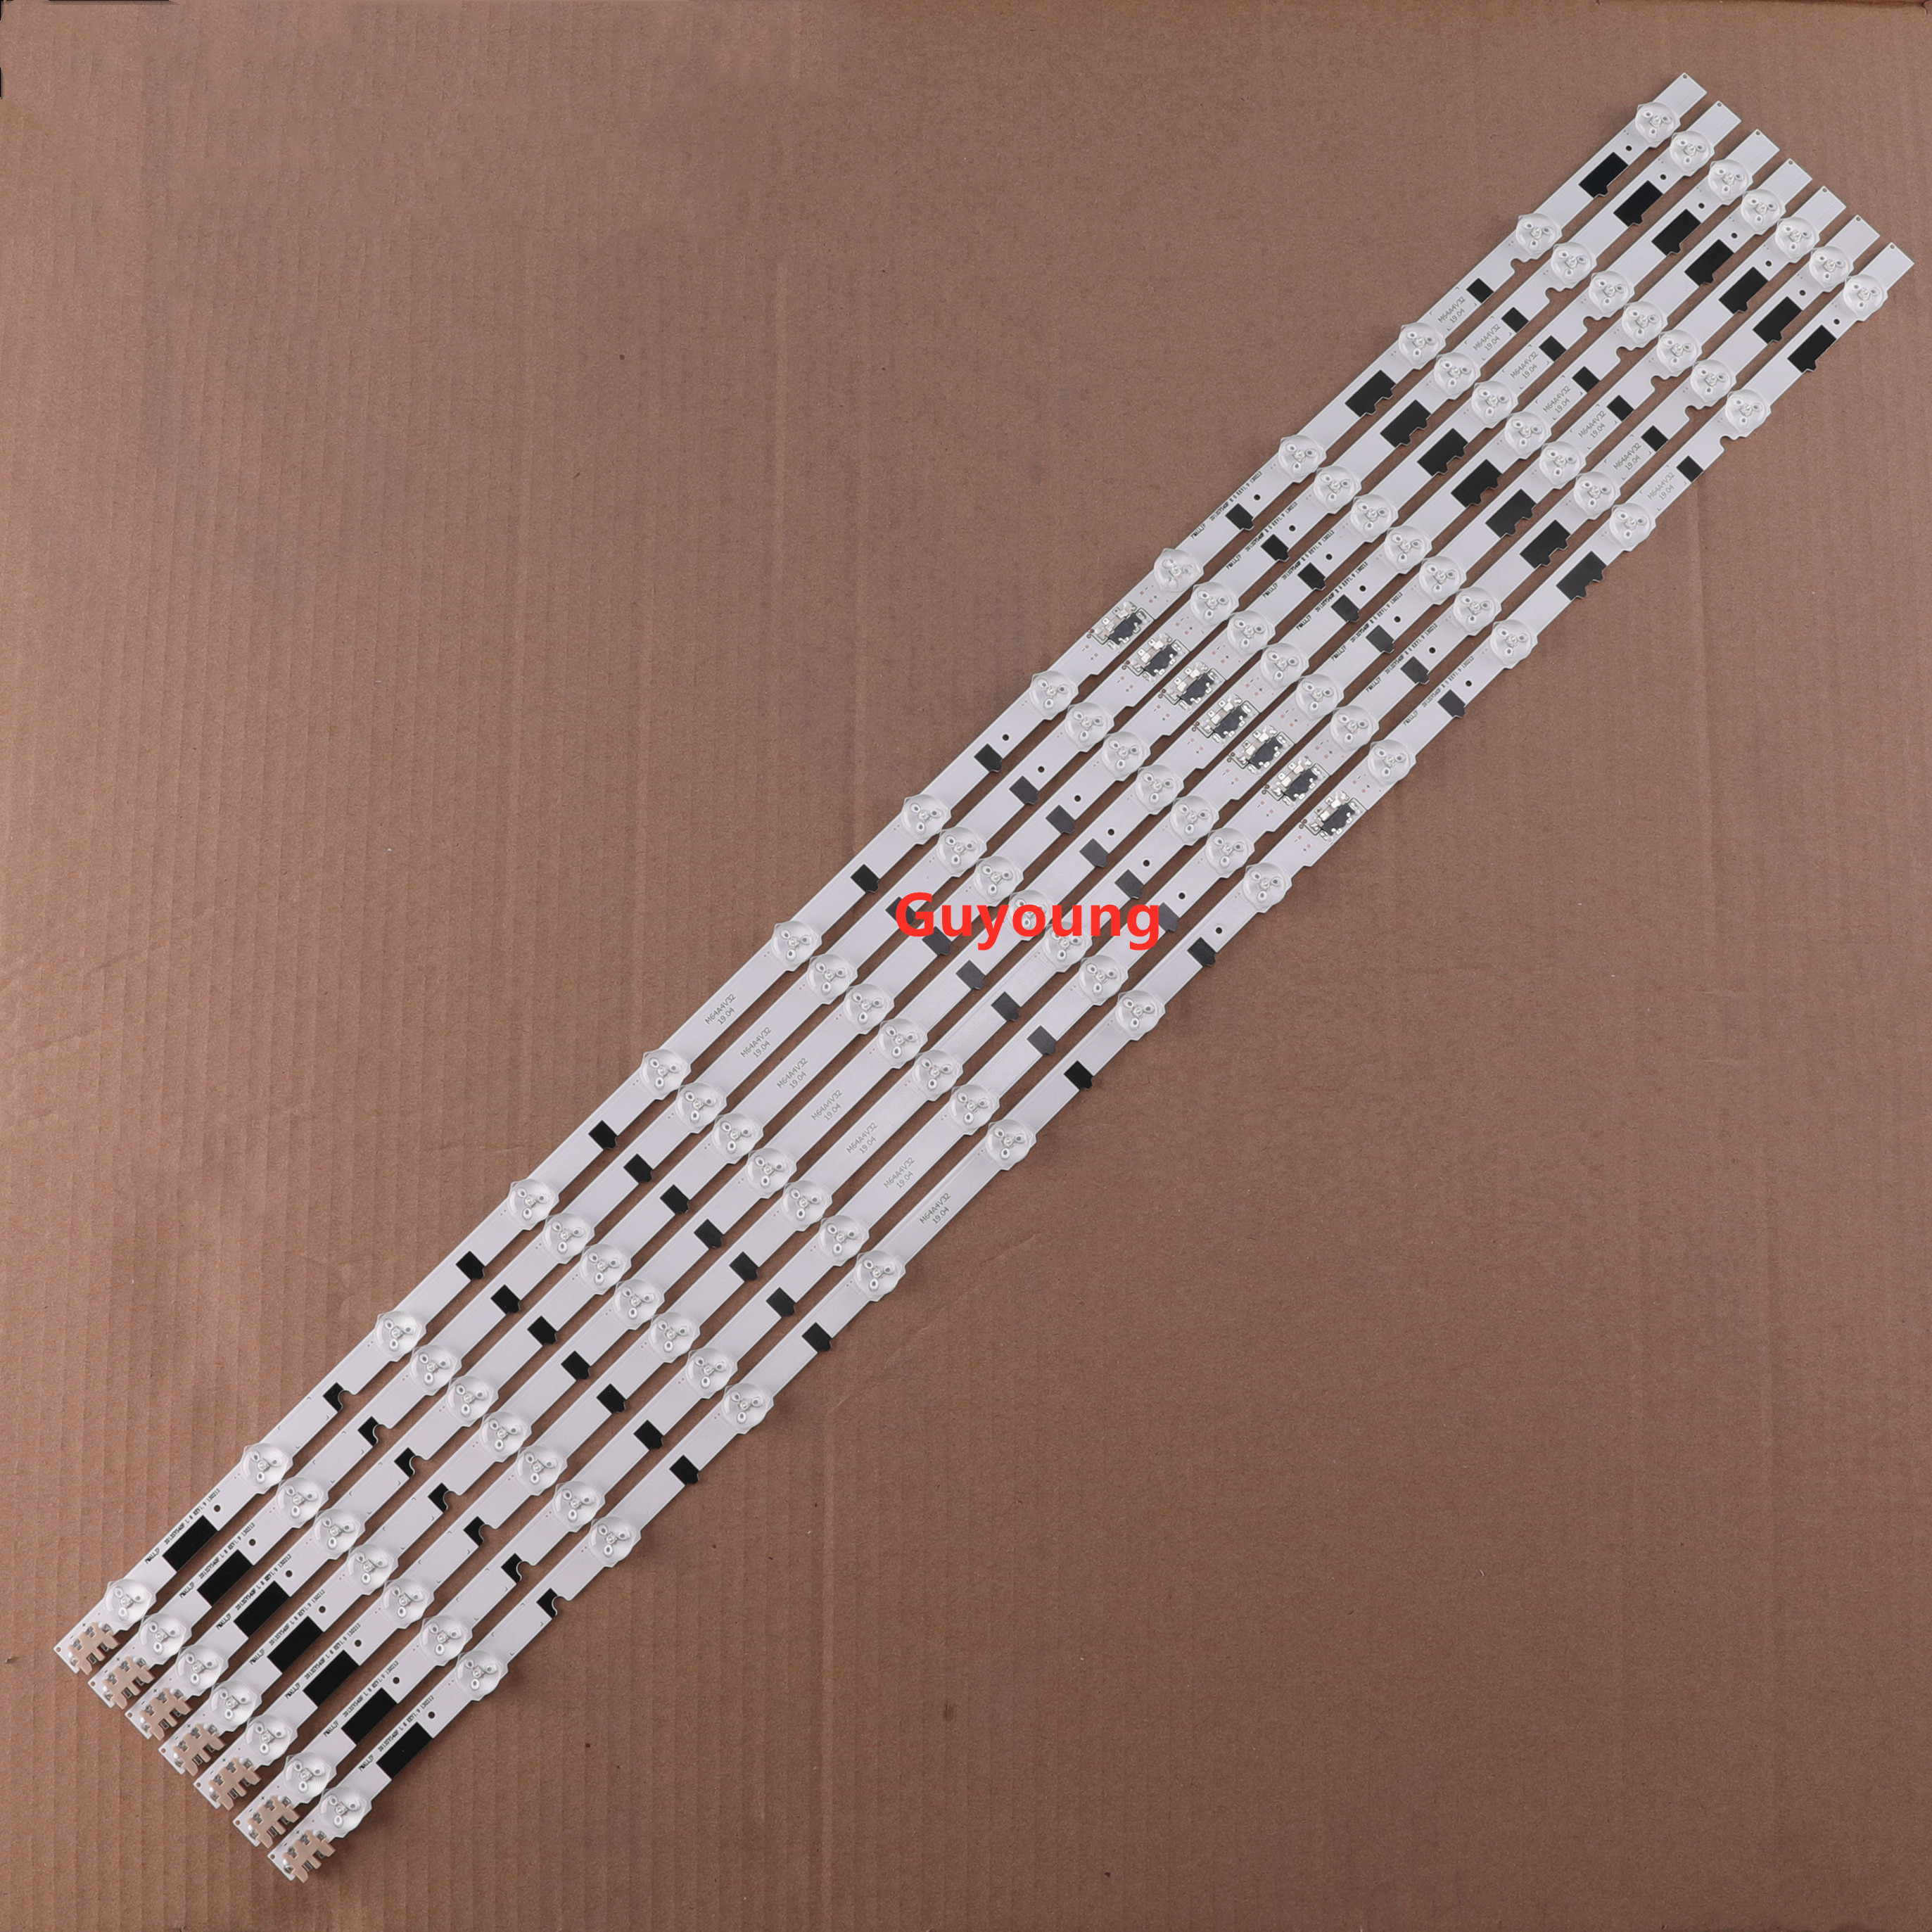 14PCS/set LED Strip For Samsung UE40F6400 D2GE-400SCA-R3 D2GE-400SCB-R3 2013SVS40F L8 R 5 BN96-25520A 25521A 25304A 25305A